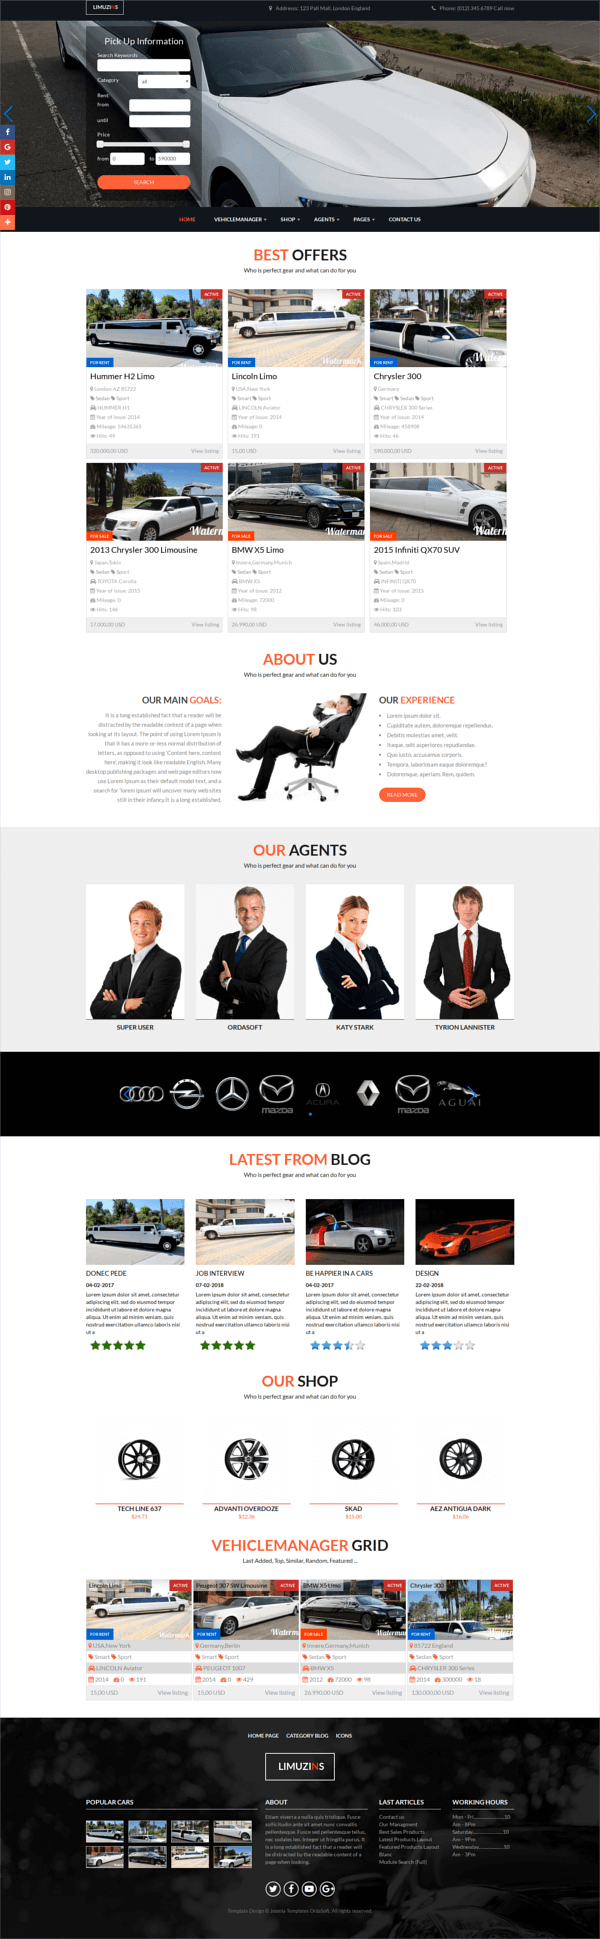 Luxury car rental, limousine website template